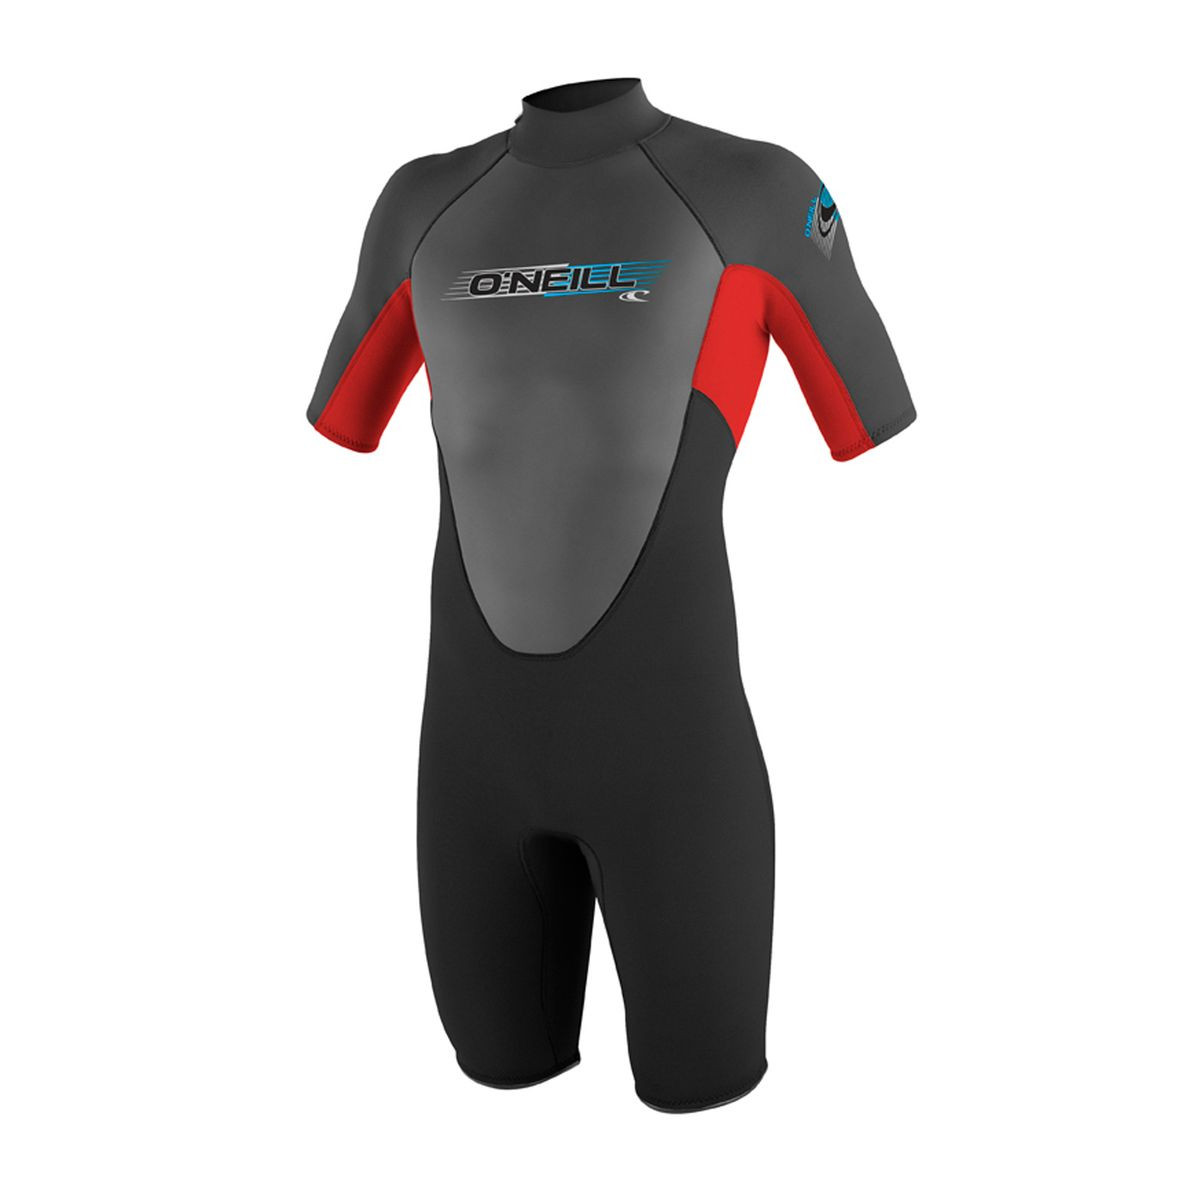 O'Neill Reactor 2mm Spring Wetsuit - Black/Red/Black